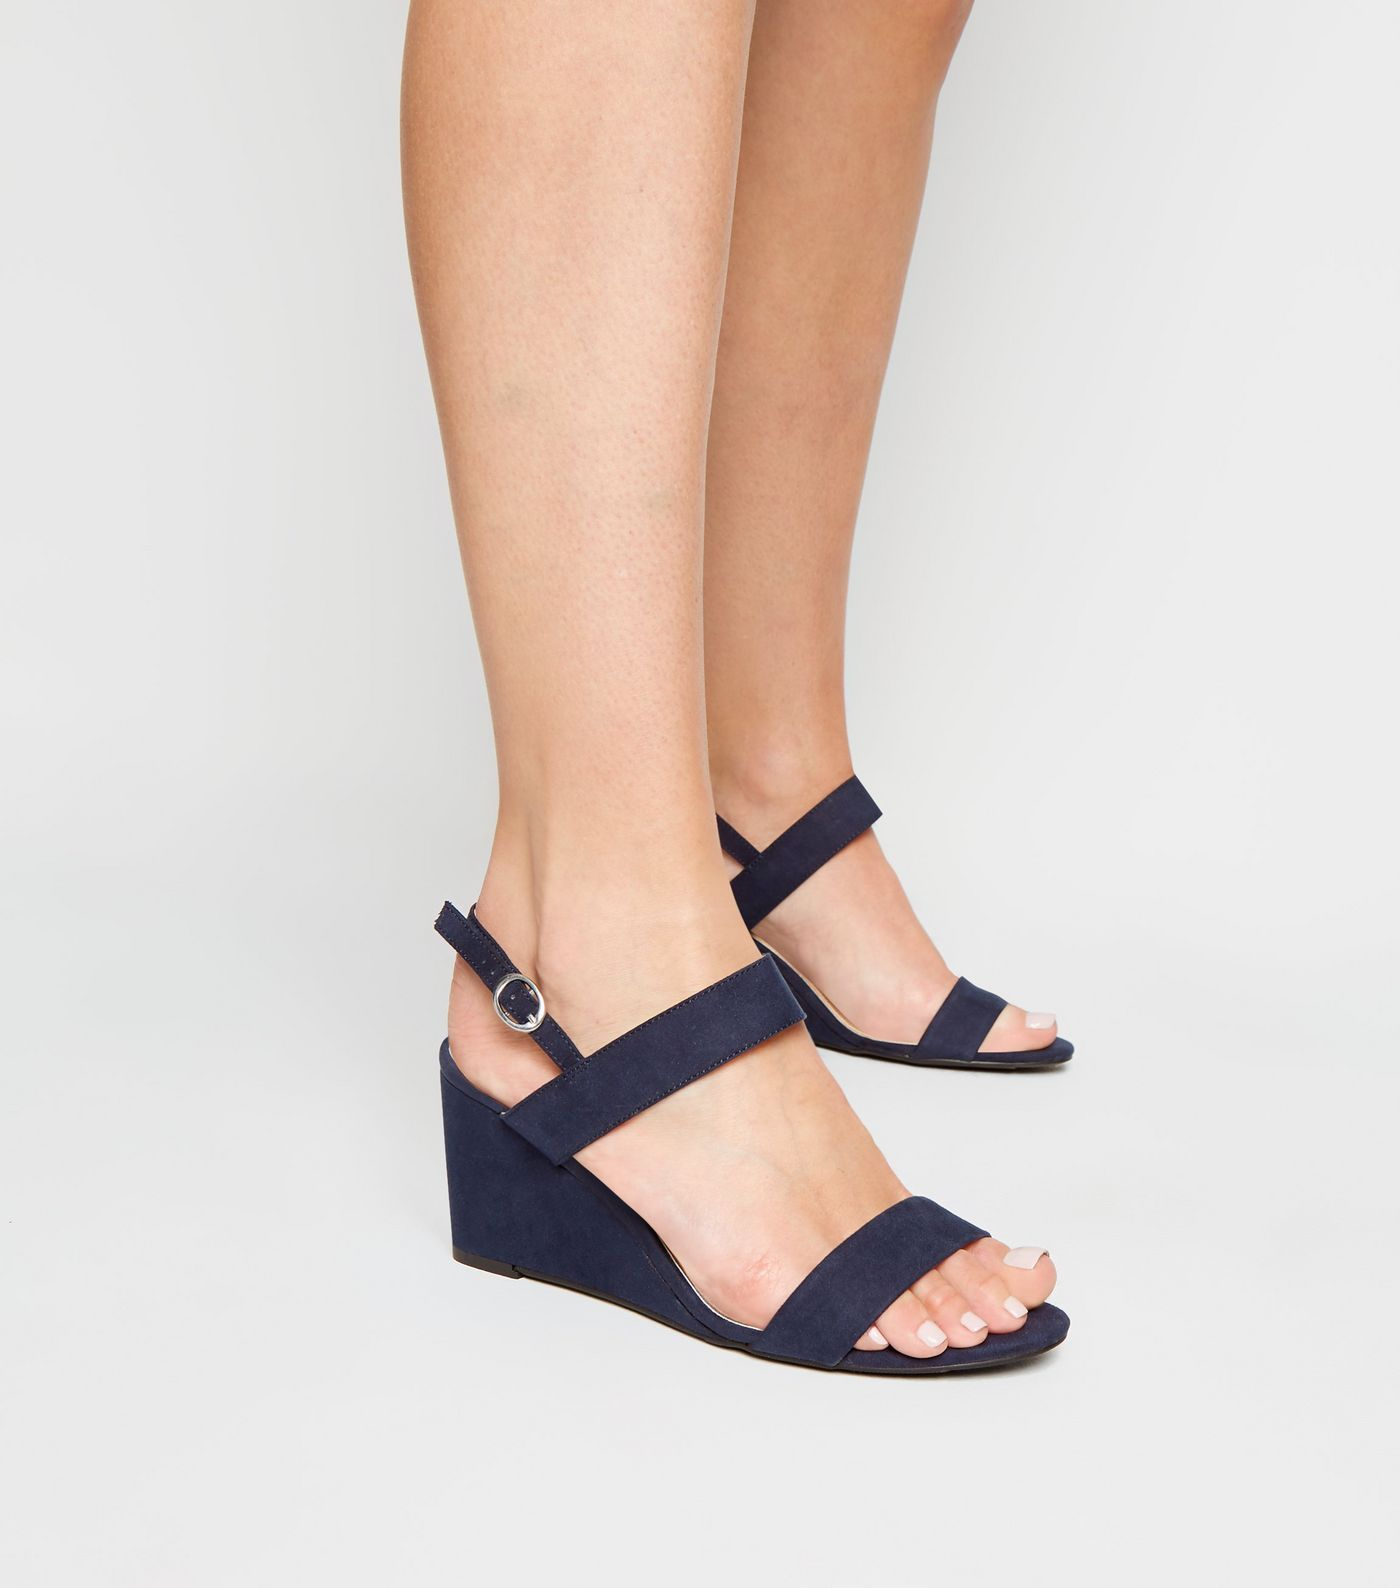 cb527f6fe1b Wide Fit Navy Suedette Wedge Sandals in 2019 | Footware | Navy wedge ...